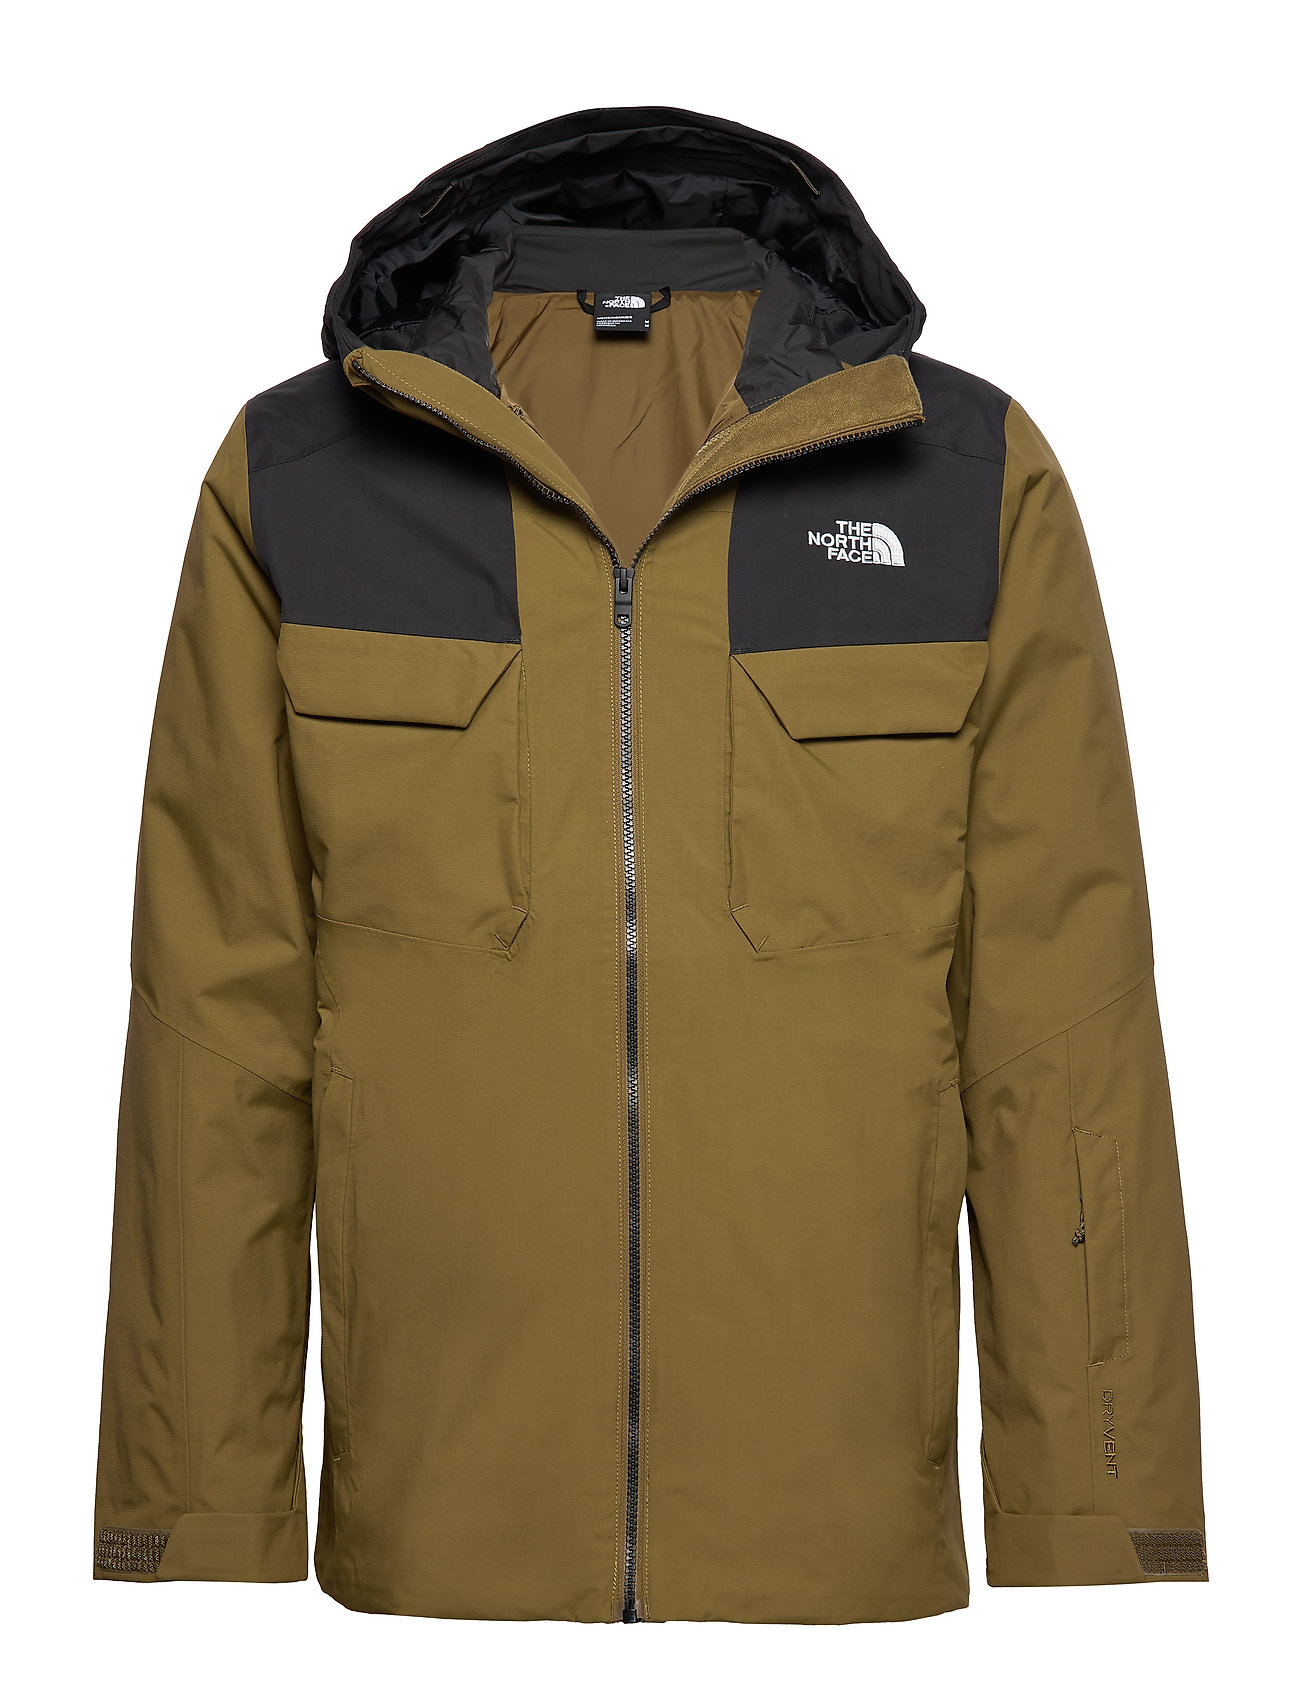 The North Face M FOURBARREL TRI JKT - OLIVE/BLACK